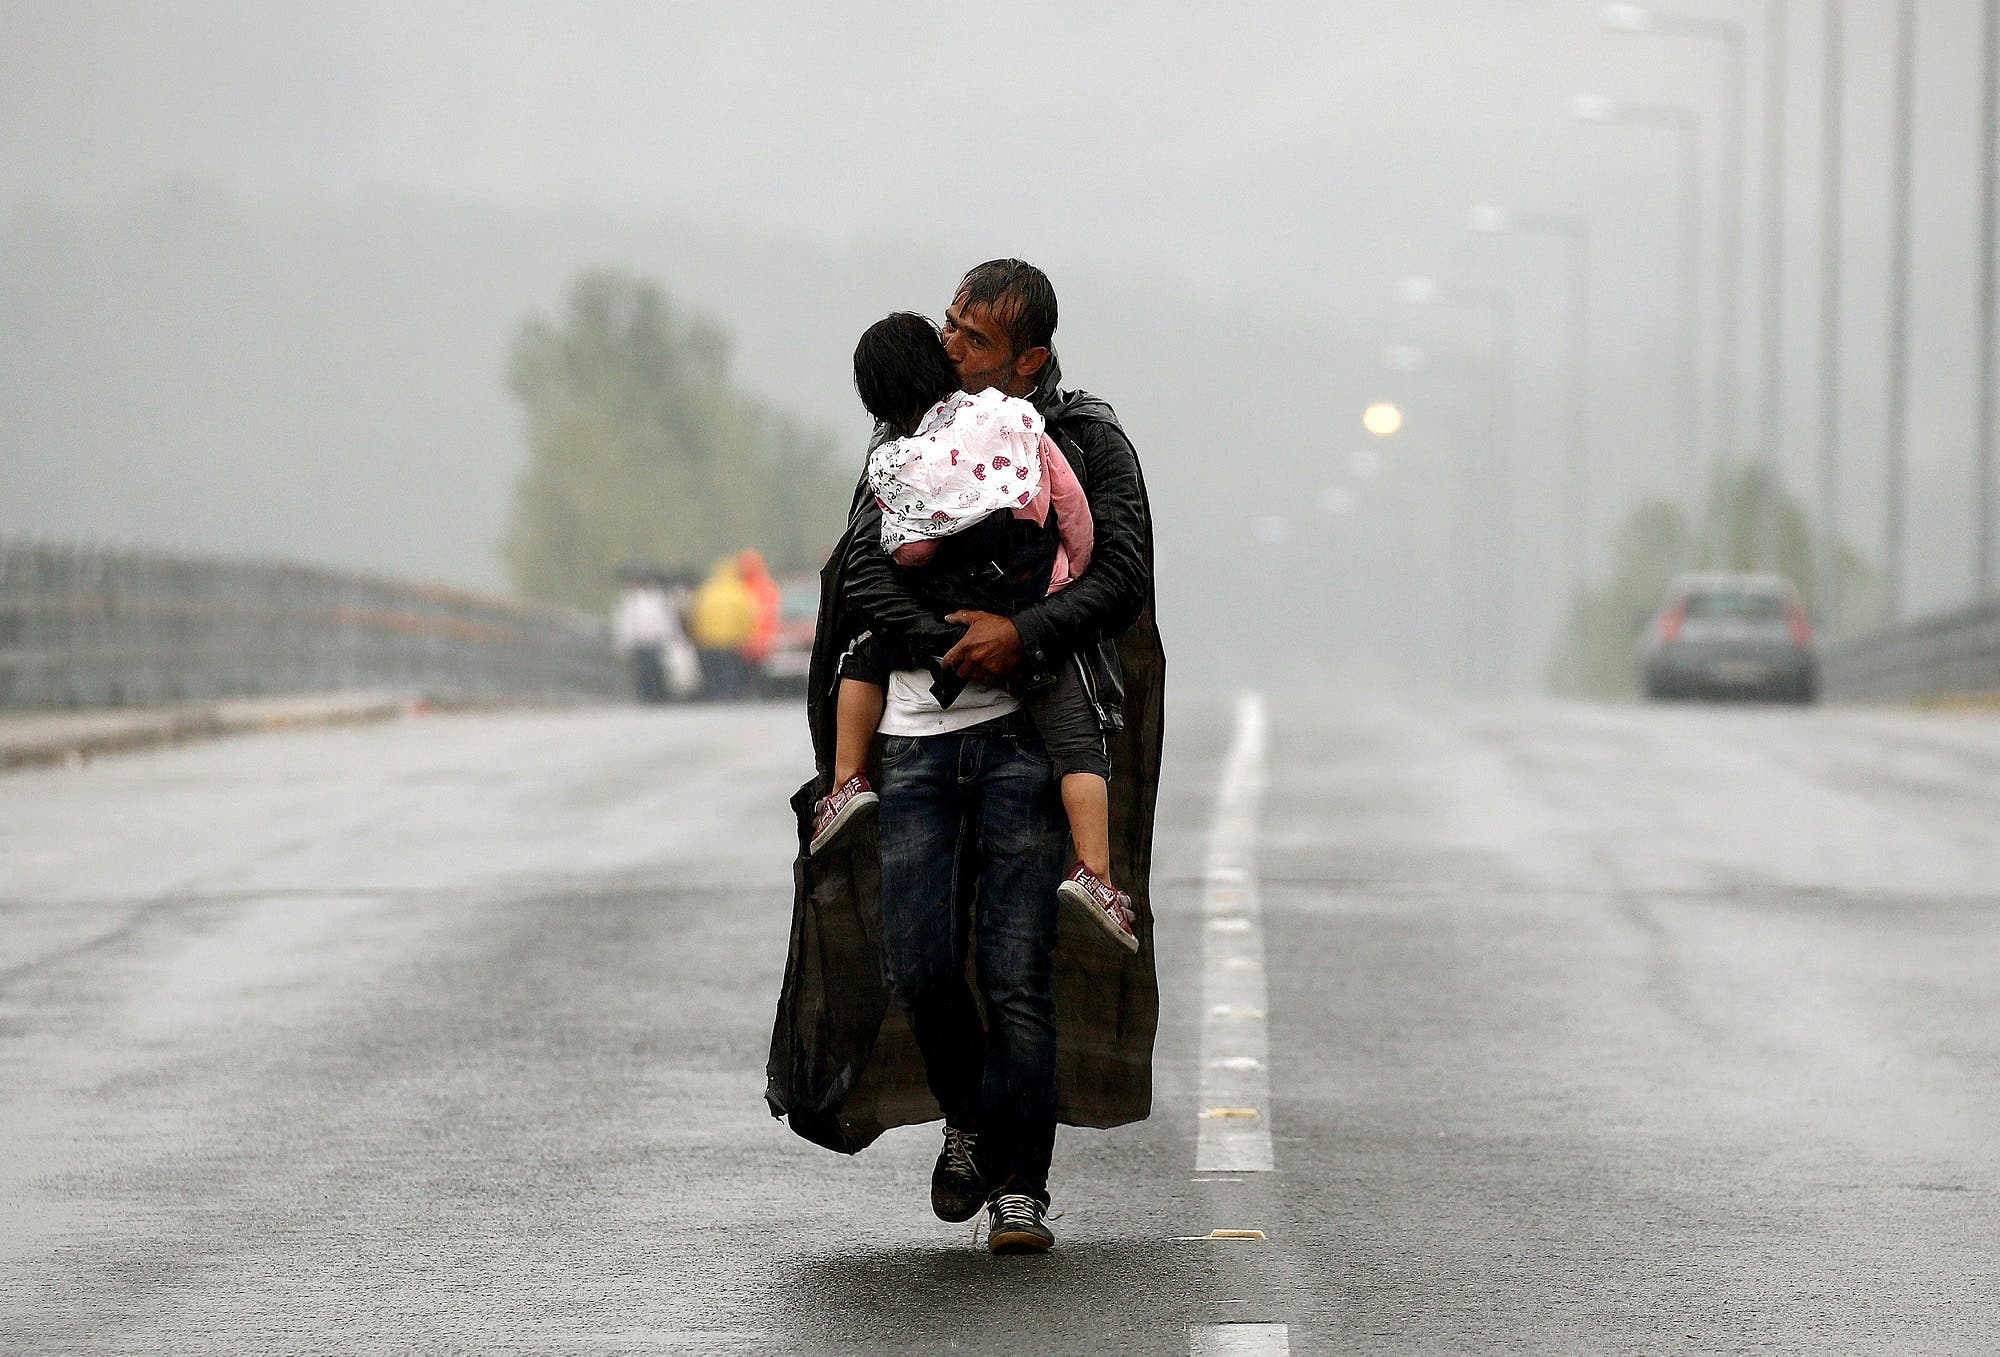 A Syrian refugee kisses his daughter as he walks through a rainstorm towards Greece's border with Macedonia on September 10, 2015. (Reuters/ Yannis Behrakis)